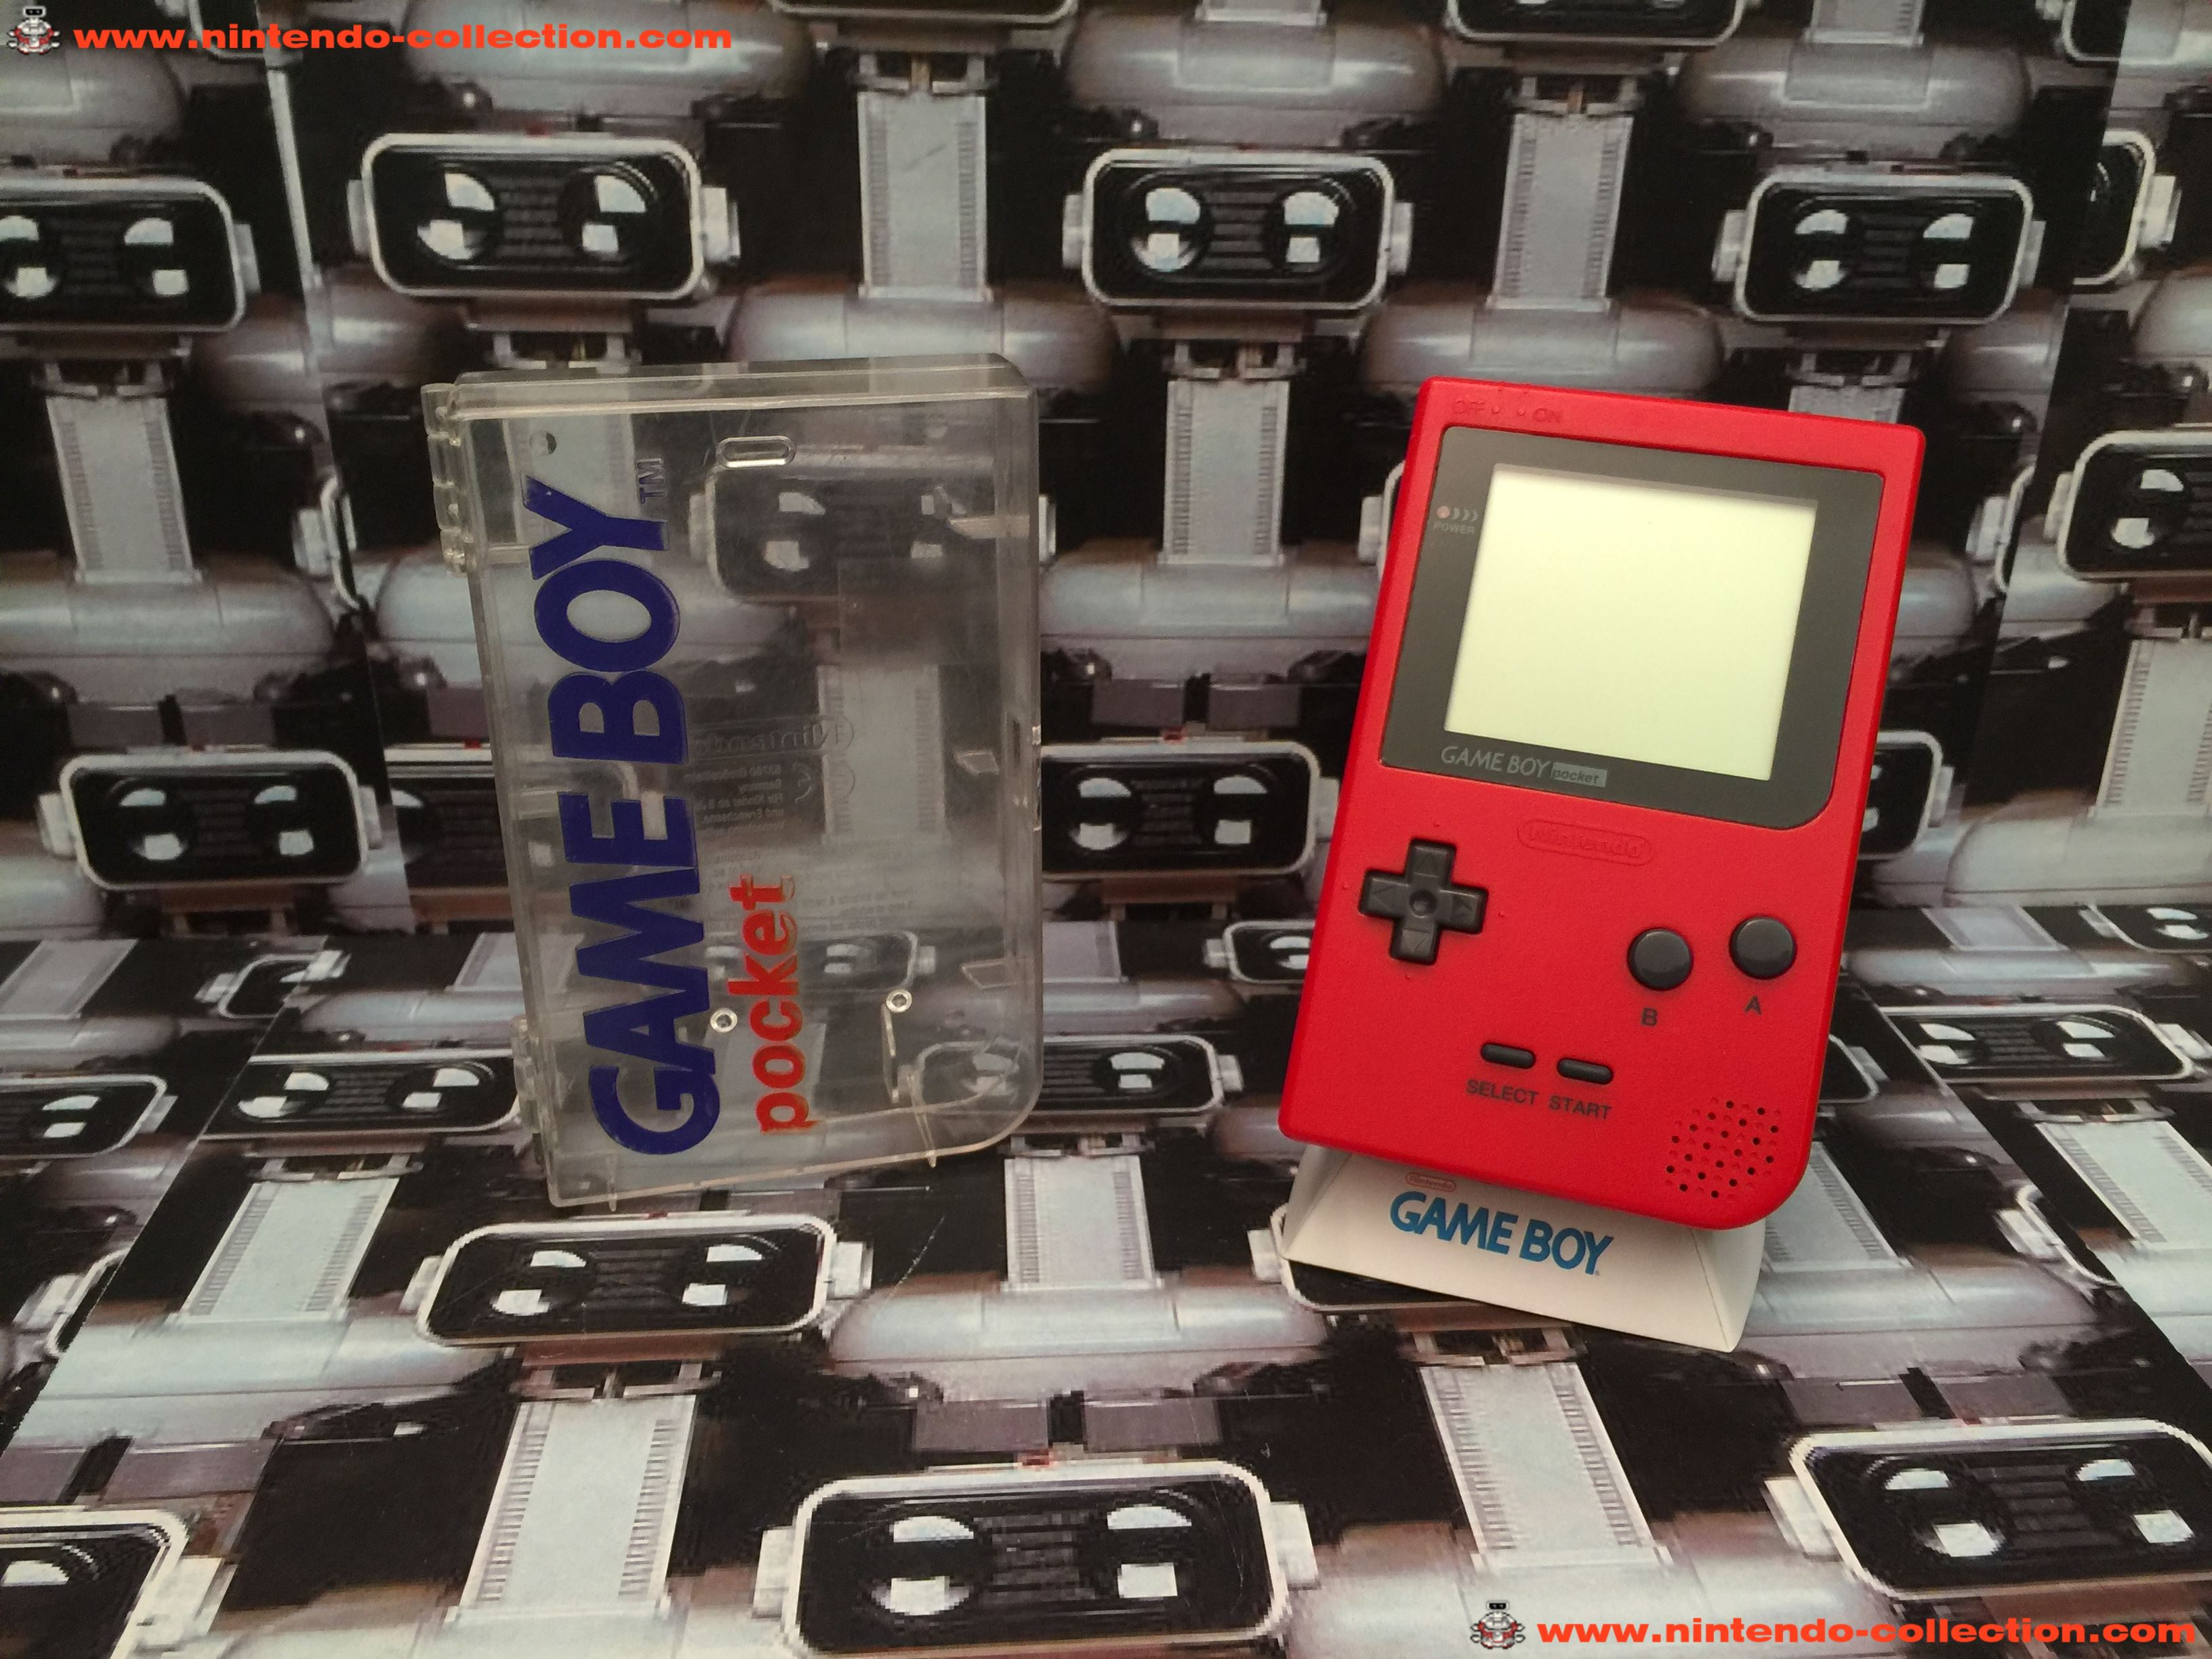 www.nintendo-collection.com - Gameboy Pocket GB Red Rouge Crystal Box - 01